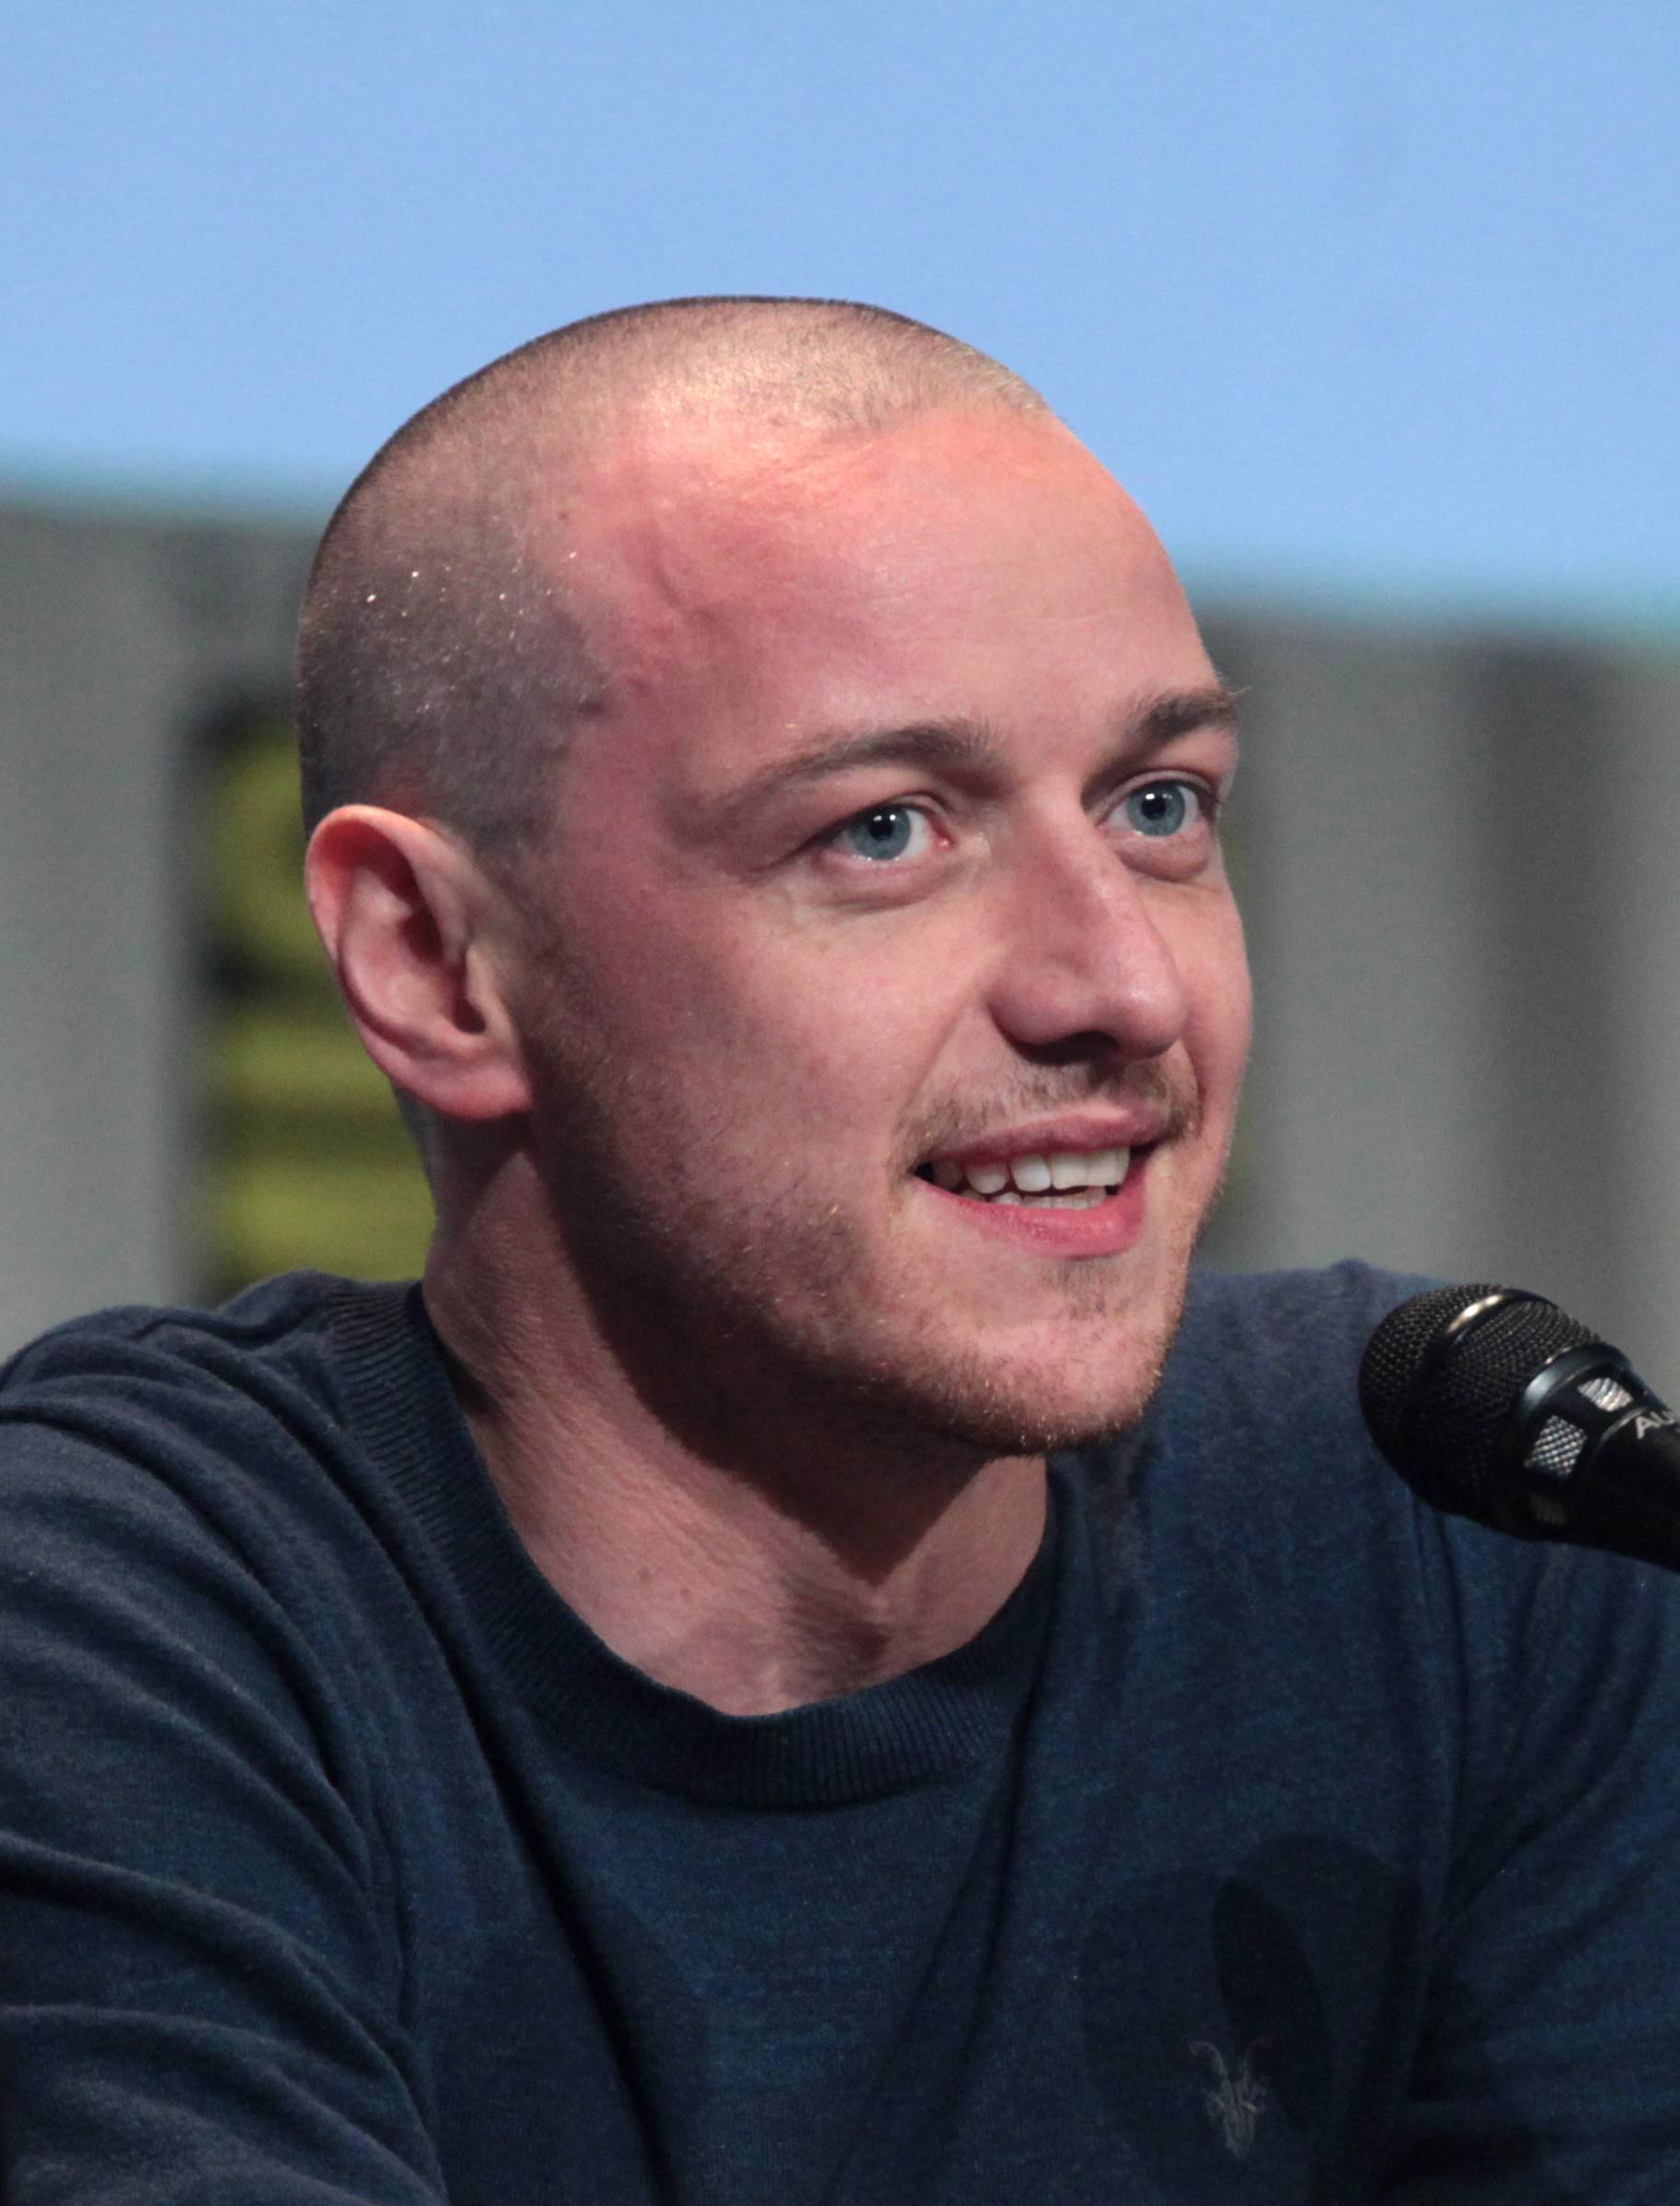 James McAvoy 2015 24 Things You Didn't Know About The X-Men Films